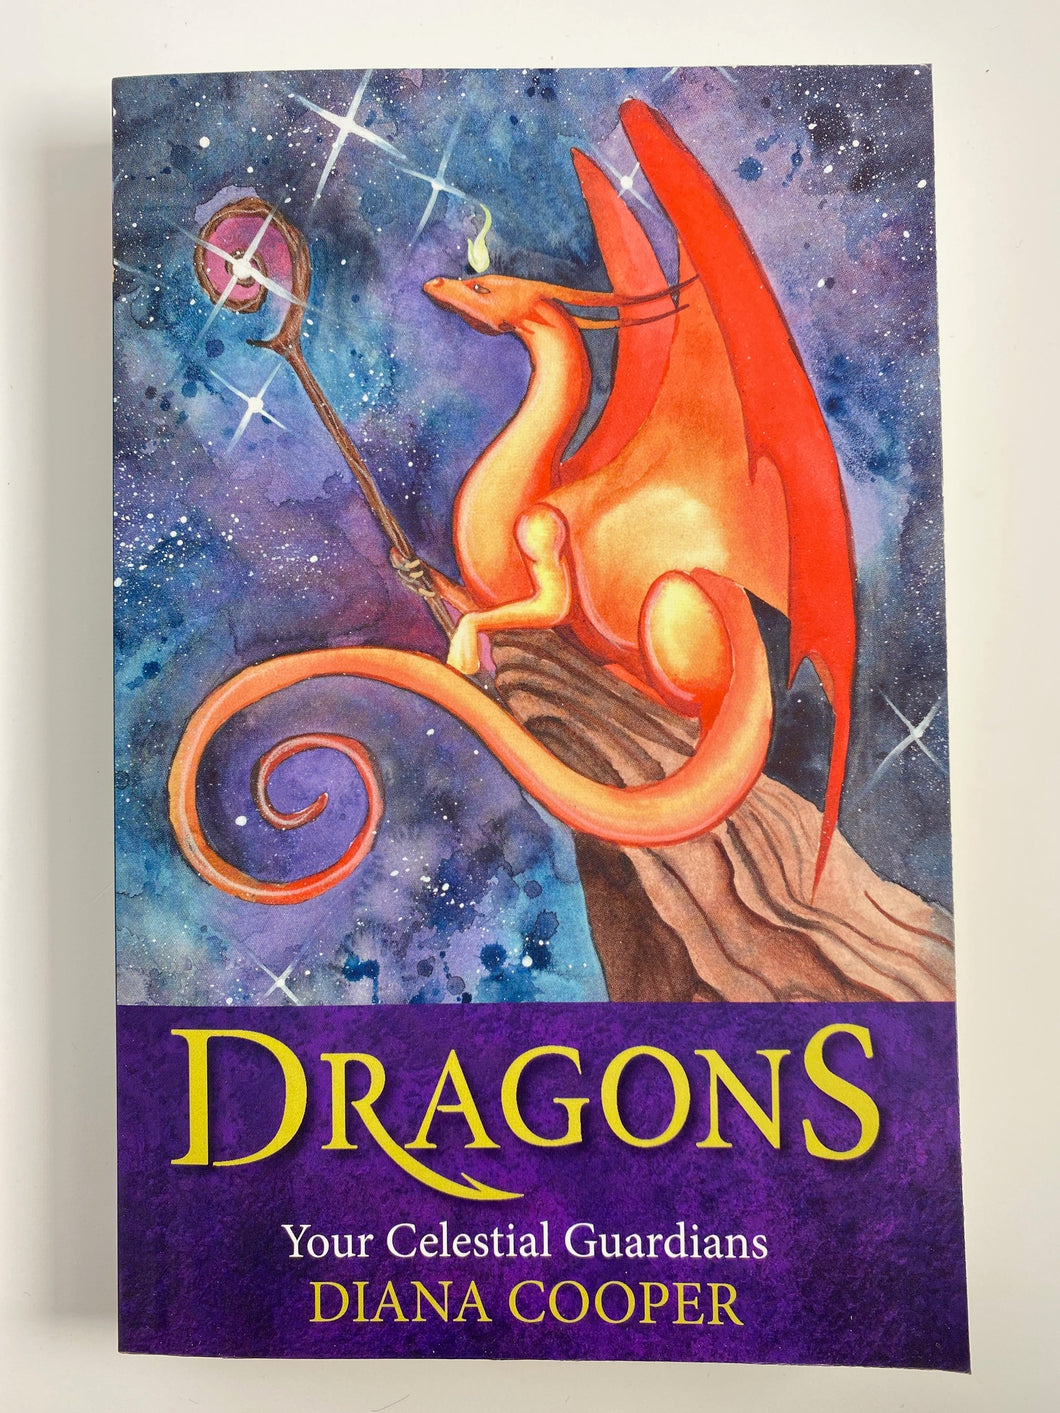 Dragons by Diana Cooper